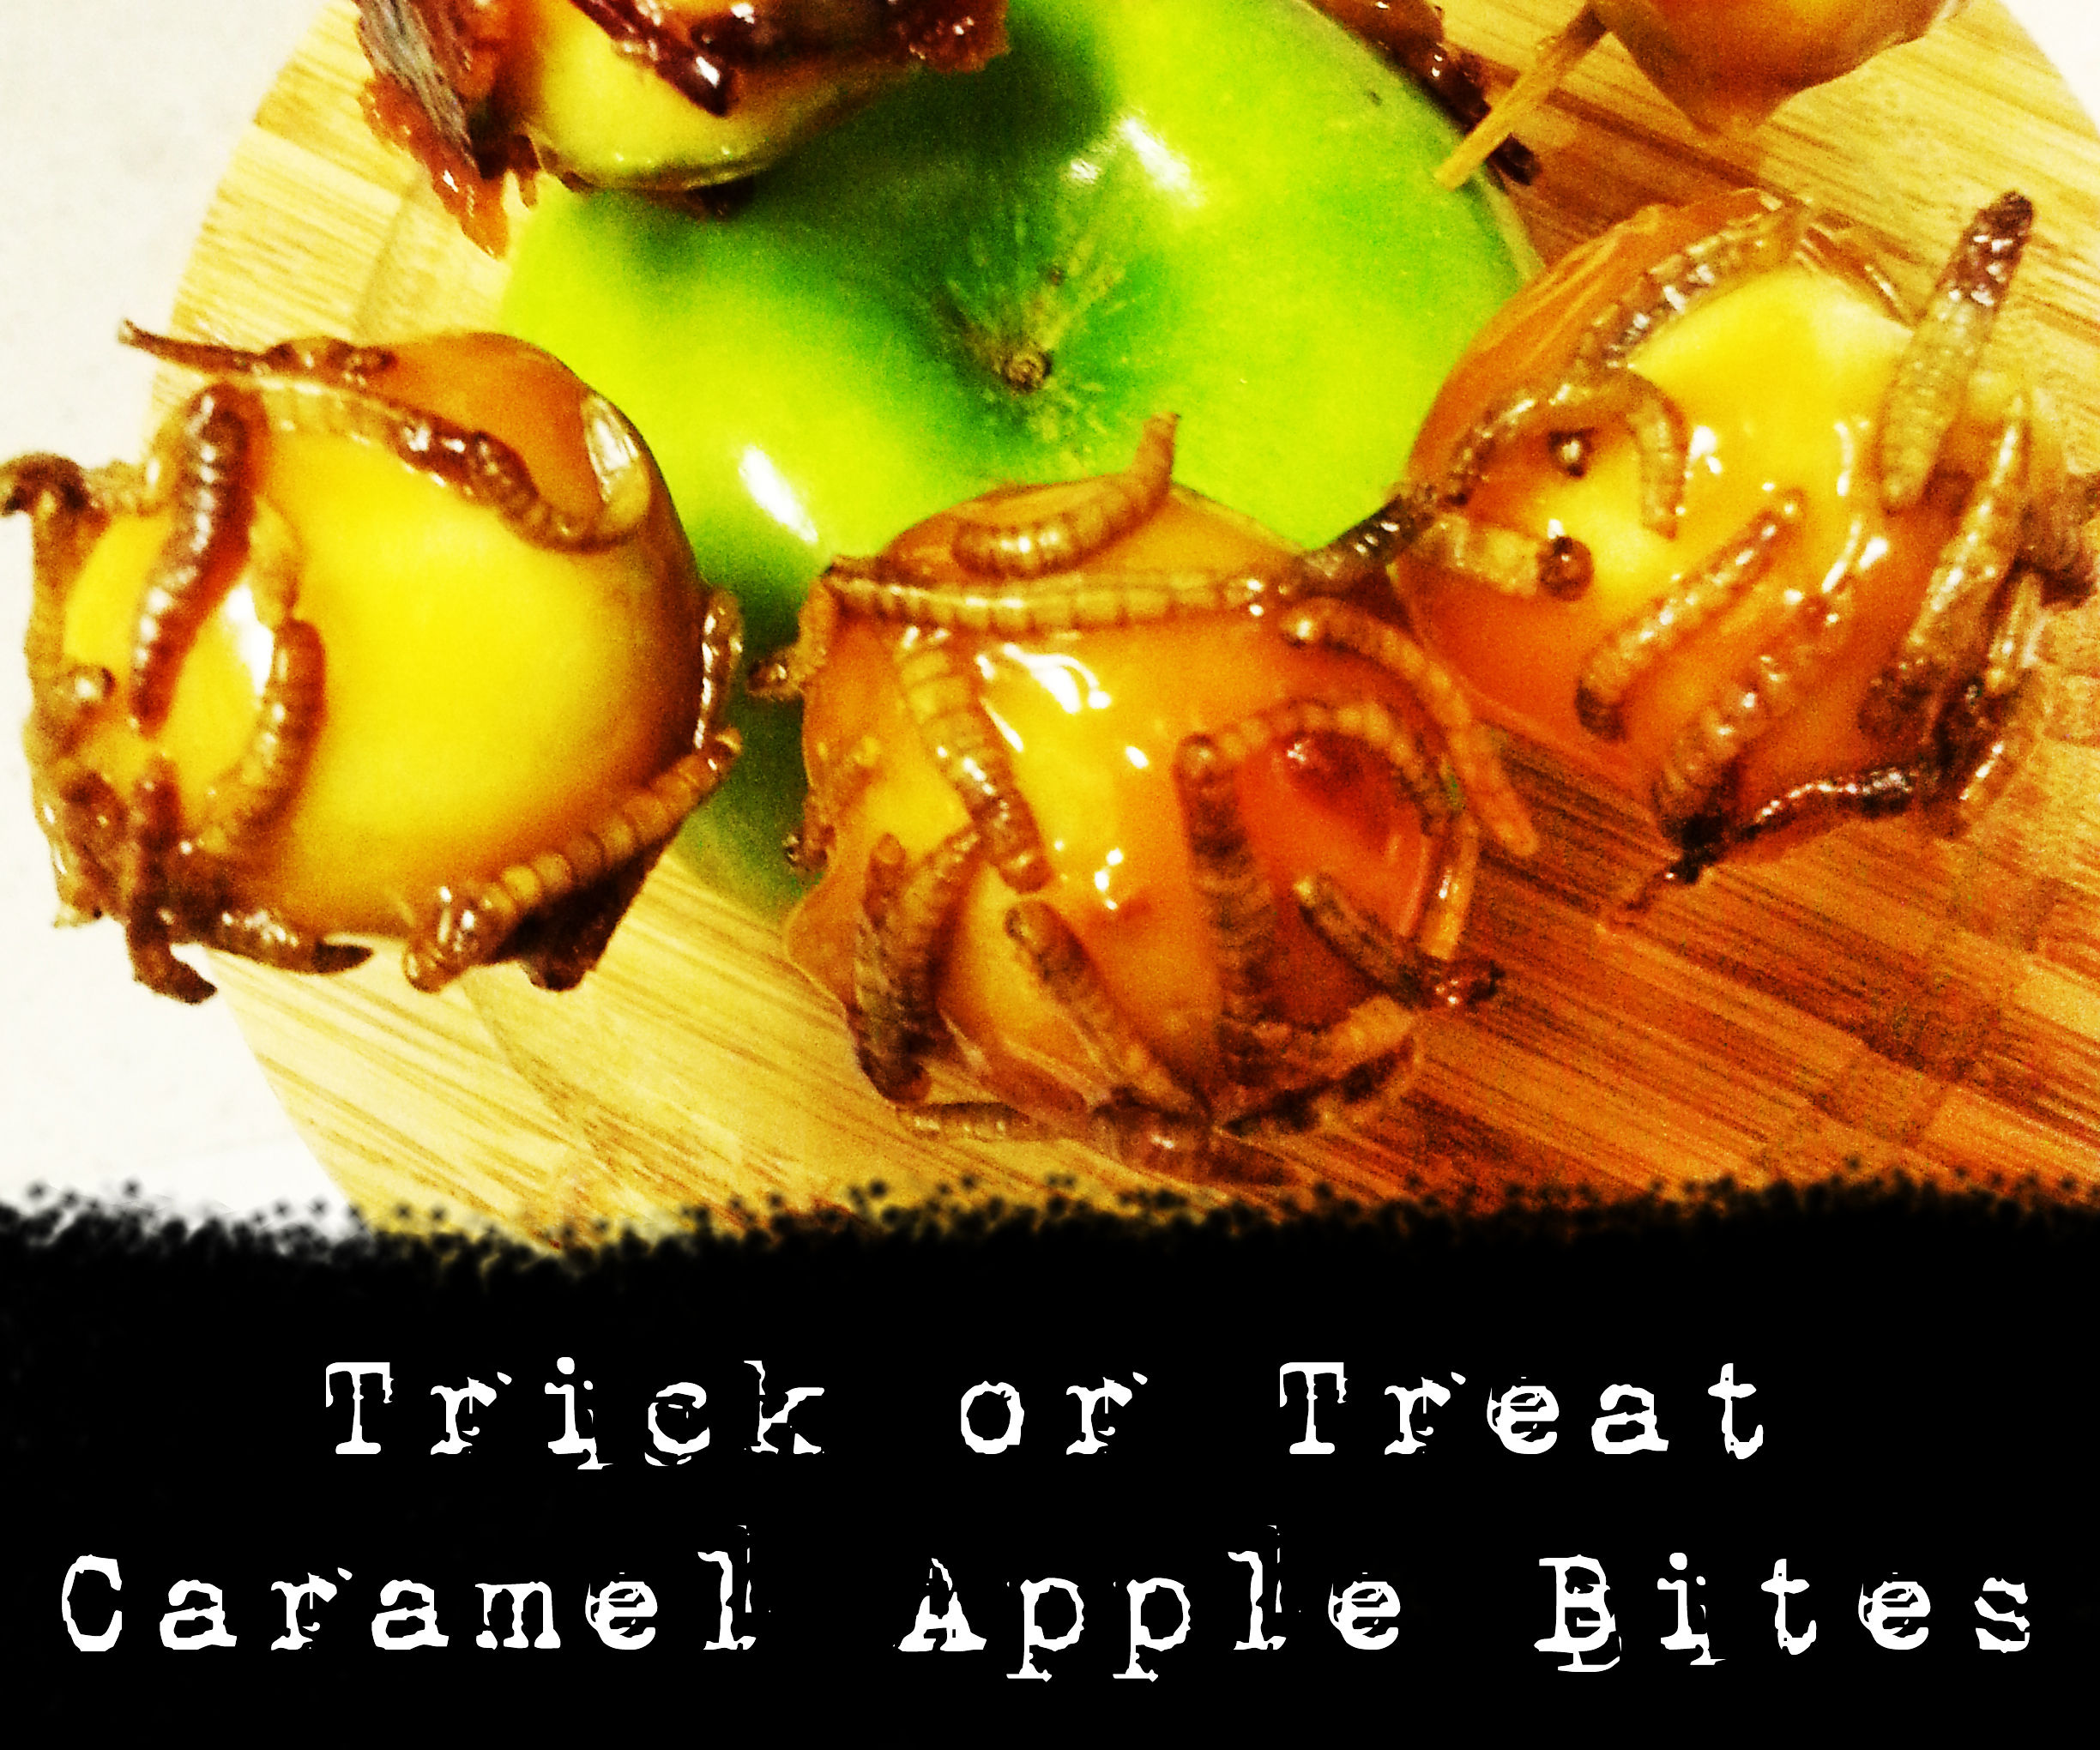 Trick or Treat Caramel Apple Bites with Candied Bacon and Mealworms